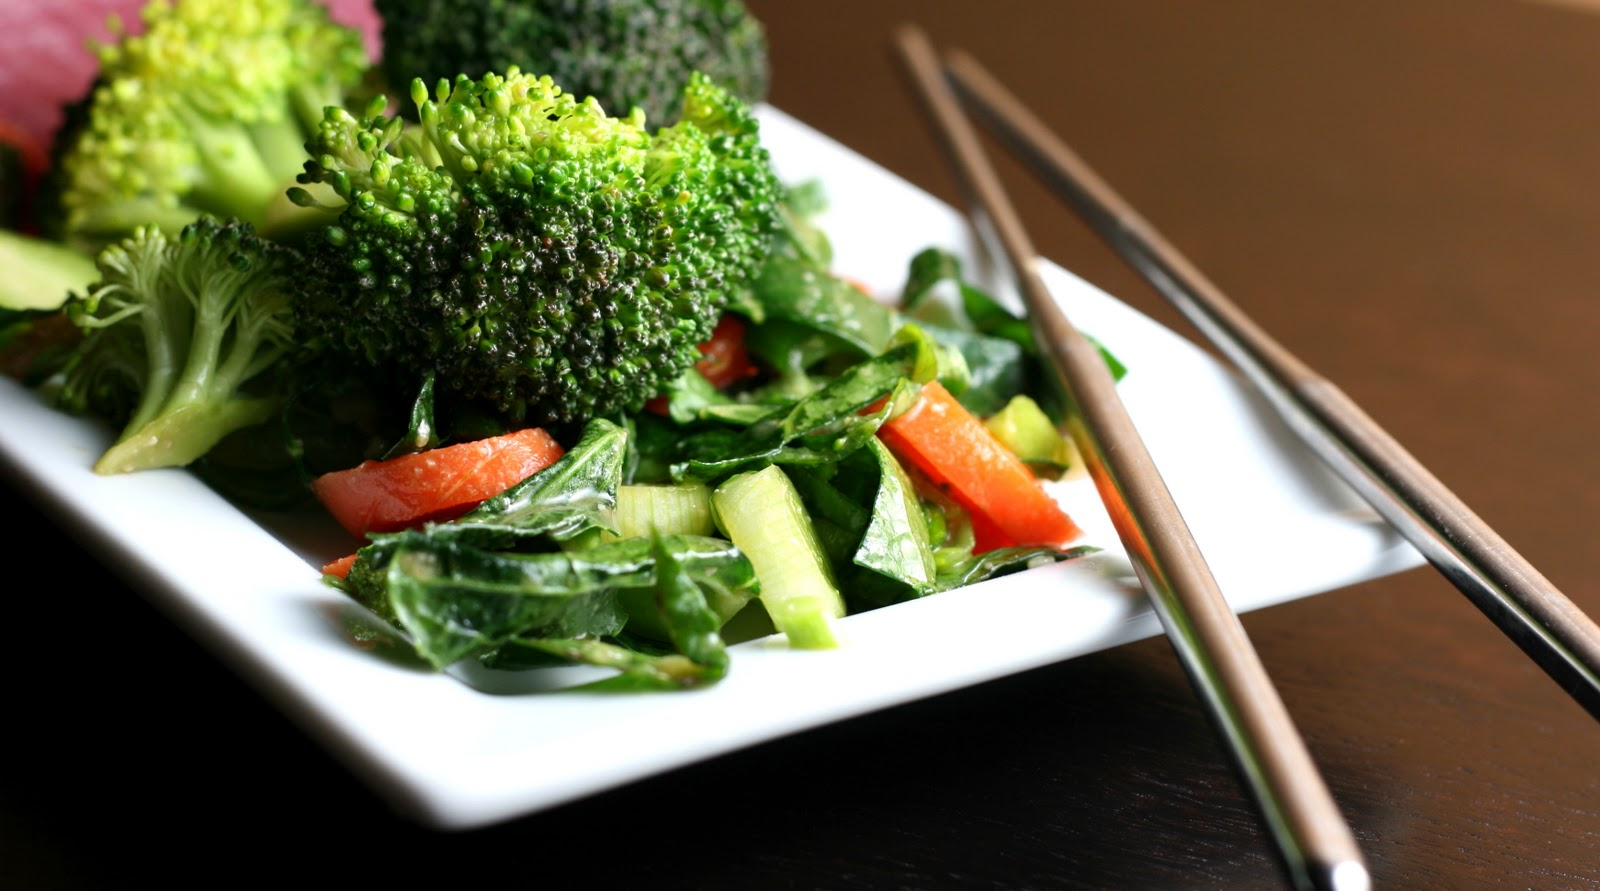 Asian Broccoli Salad with Miso Mayo